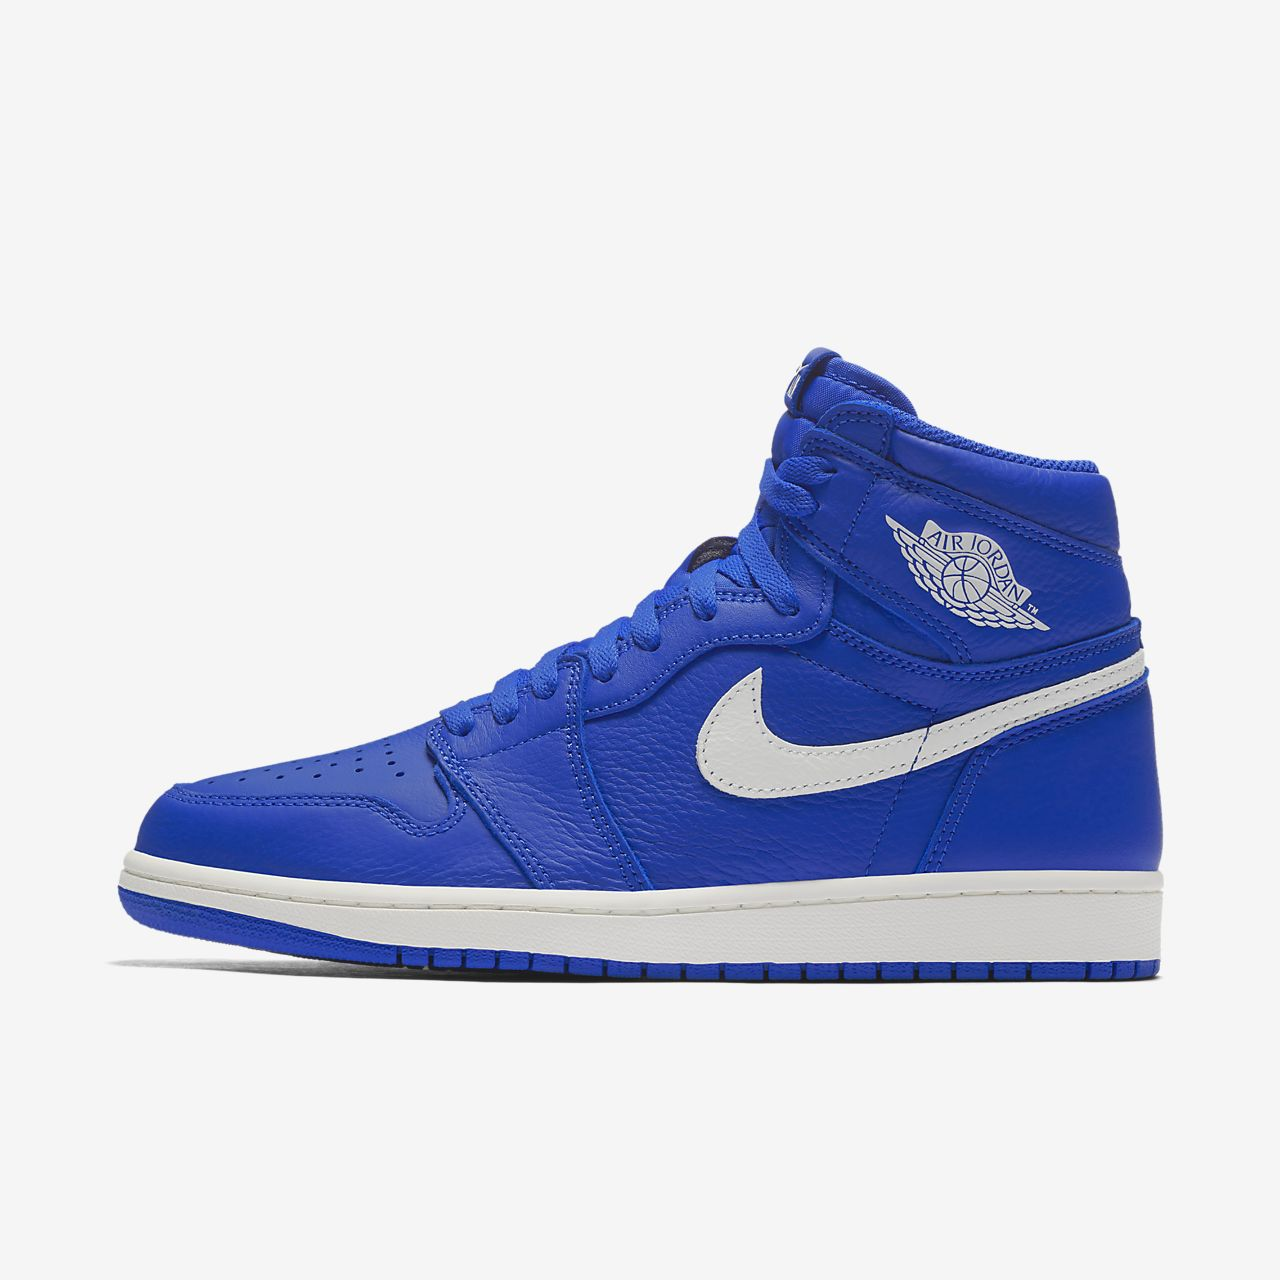 ad99384fe4e Air Jordan 1 Retro High OG Shoe. Nike.com BE